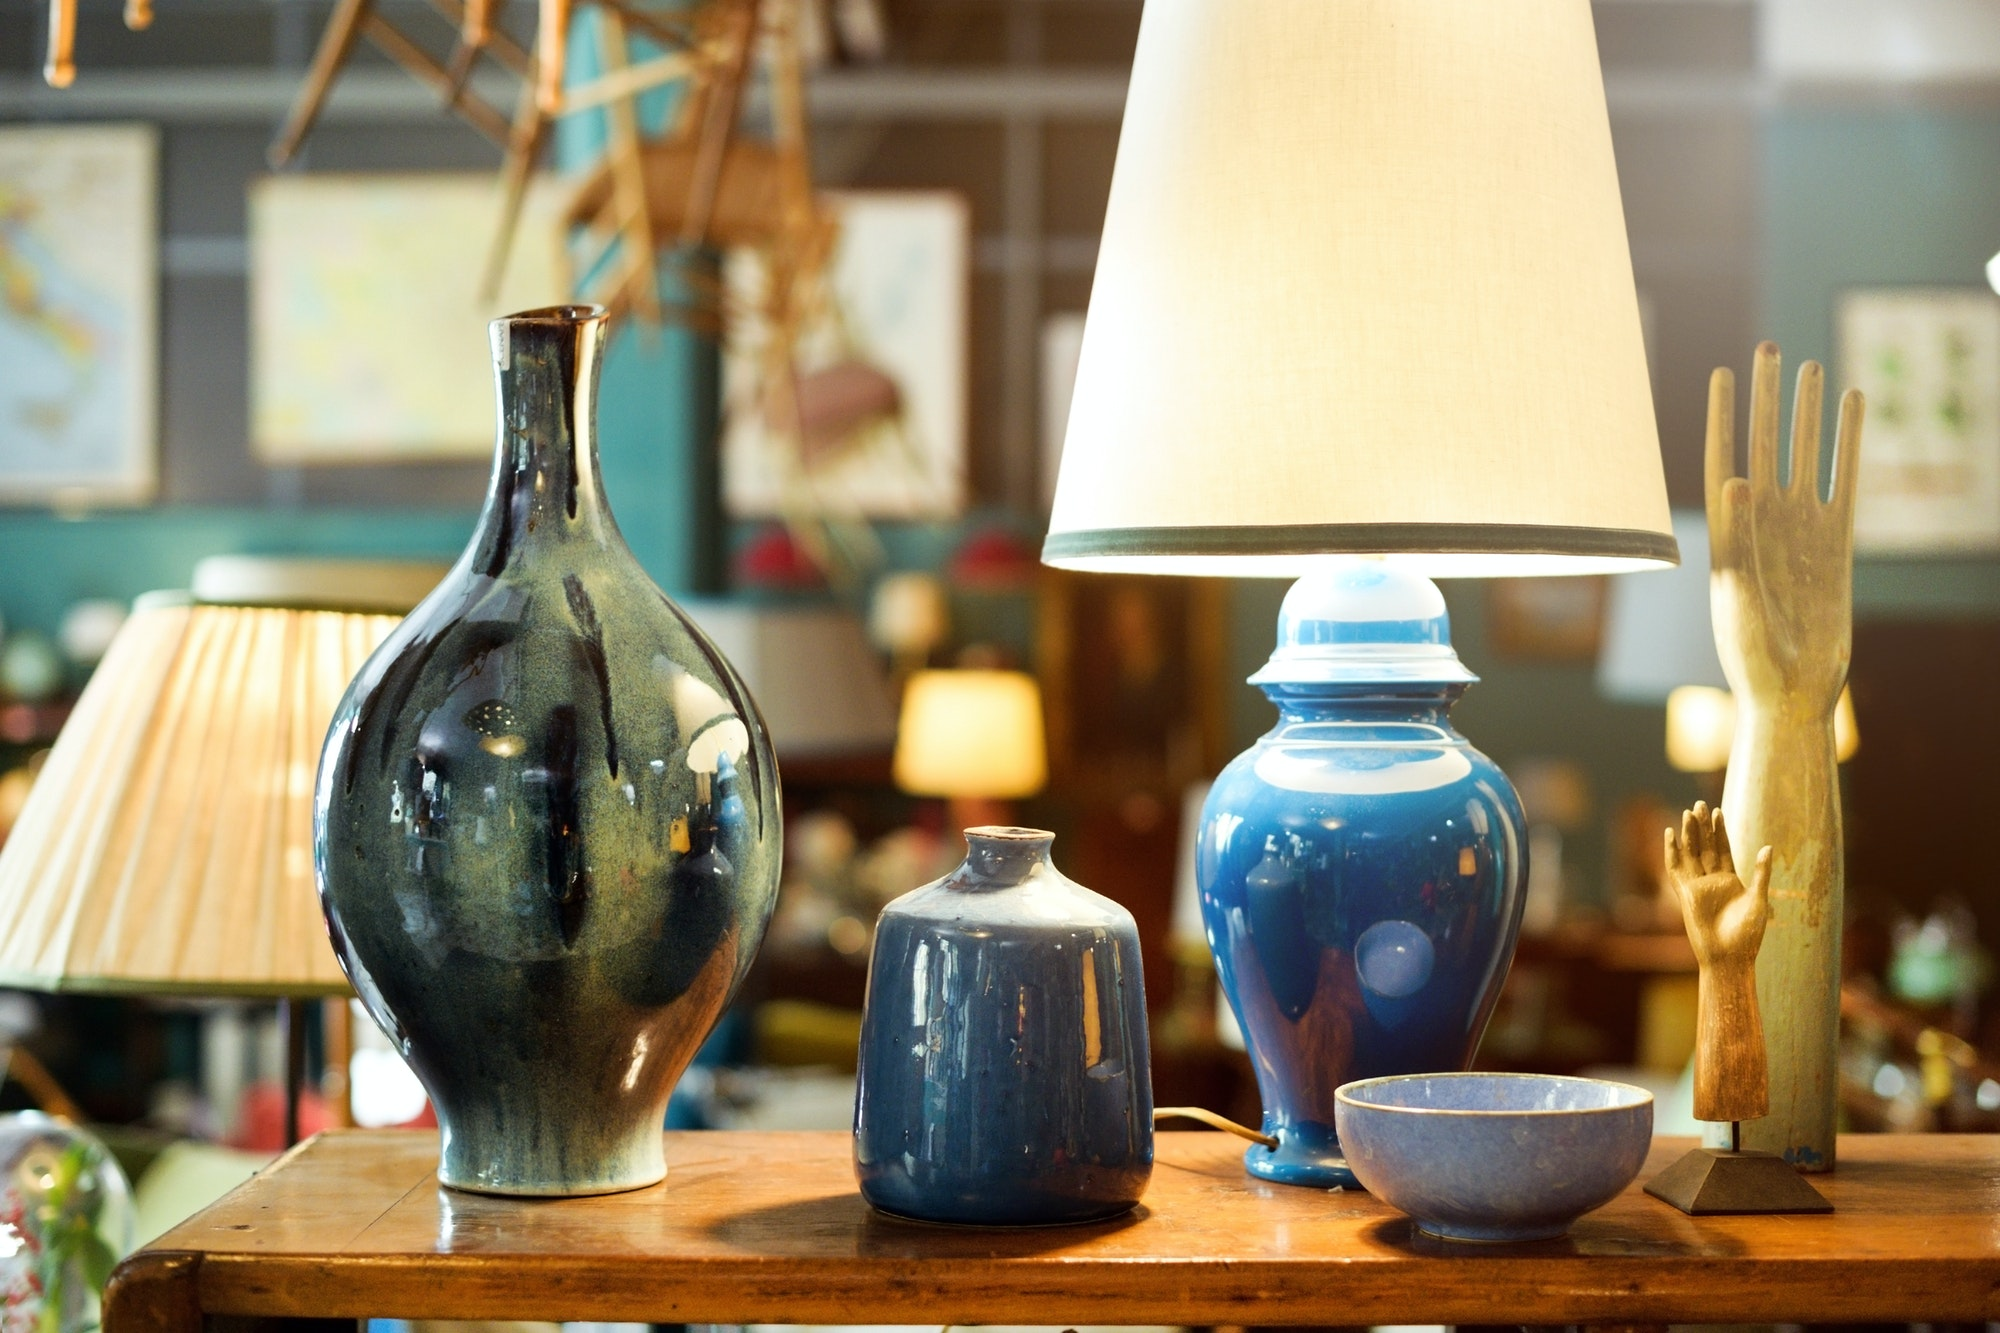 Display of handmade colorful glazed pottery or ceramics in a store